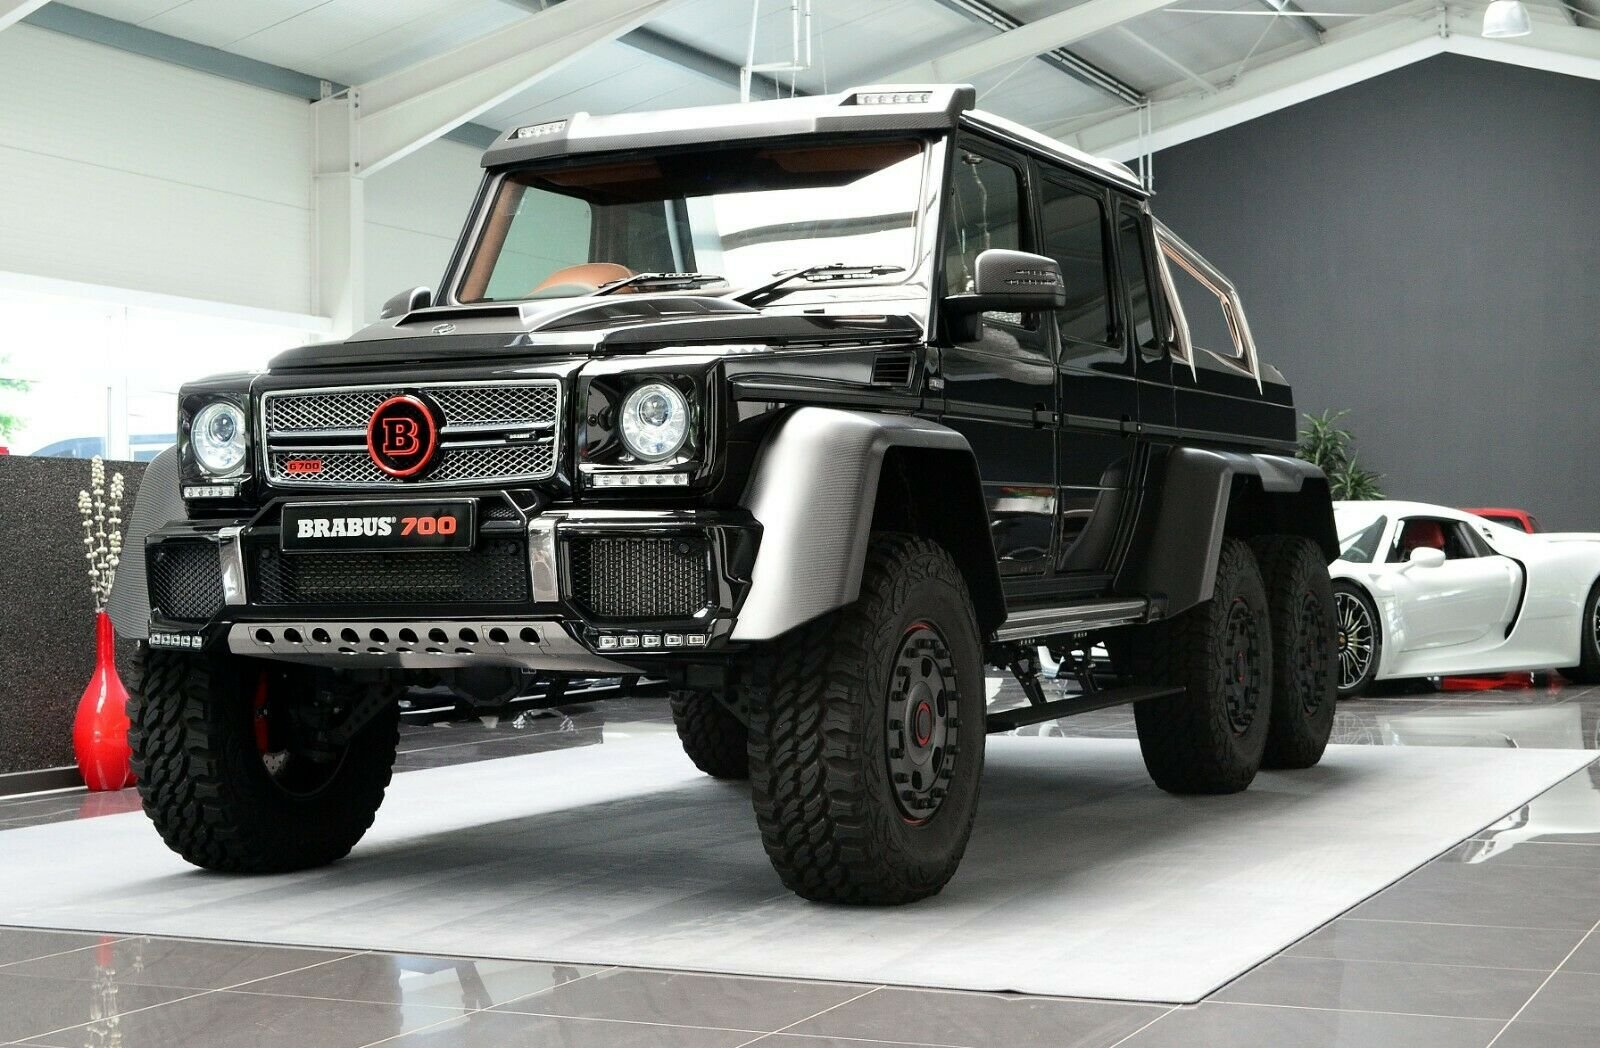 Mercedes-Benz G 63 AMG 6x6 Brabus700 - 1of15 (16)